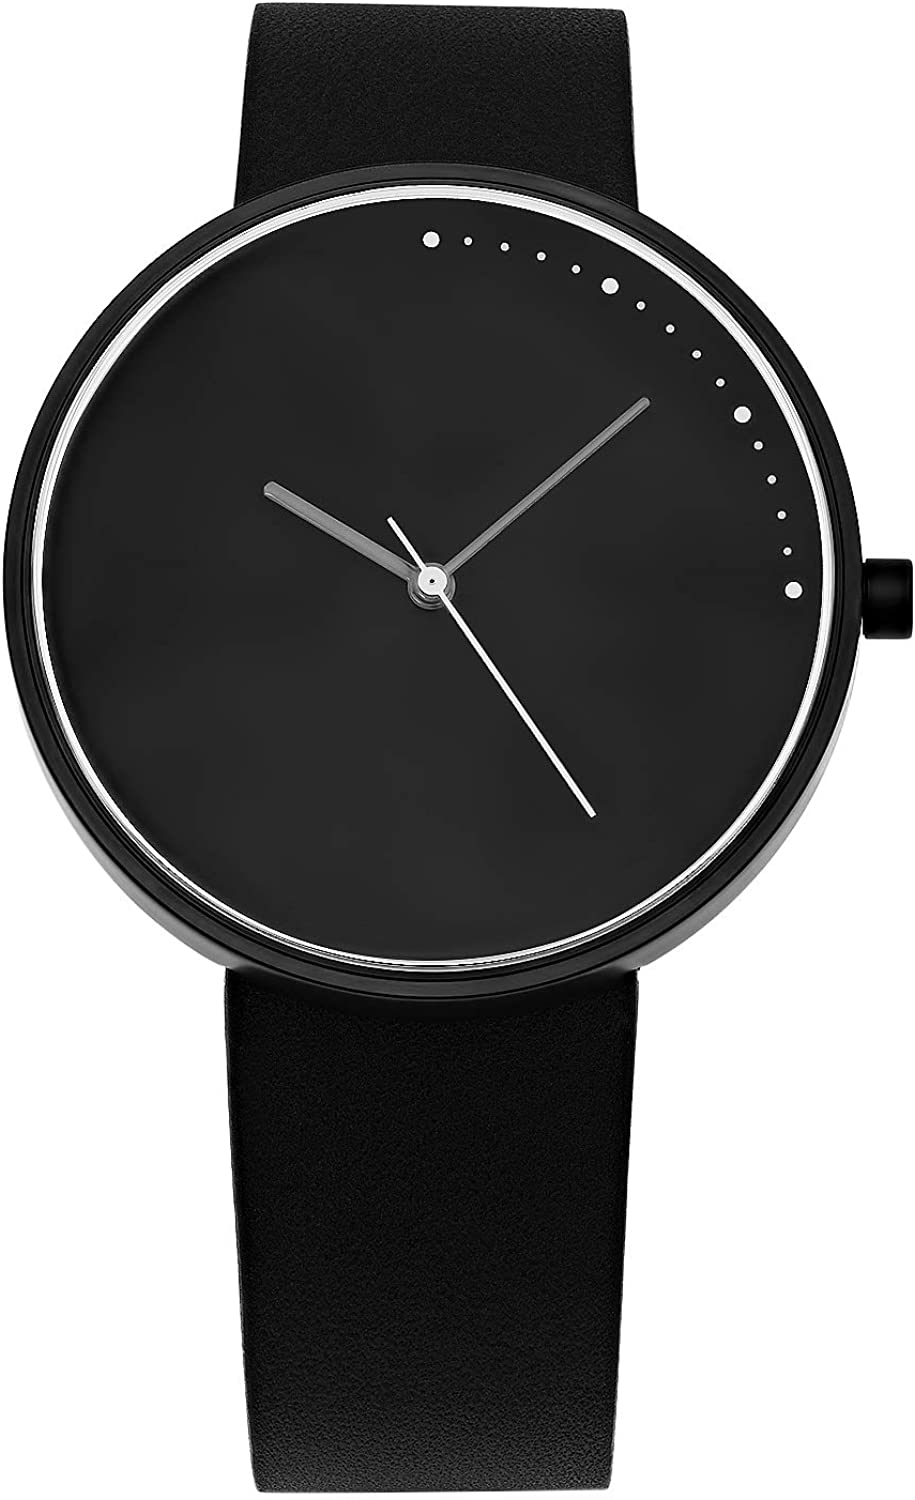 Abstrait LA : Crescent Minimal 42mm Stainless Steel : Quick Release Genuine Leather Japanese Quartz Watch